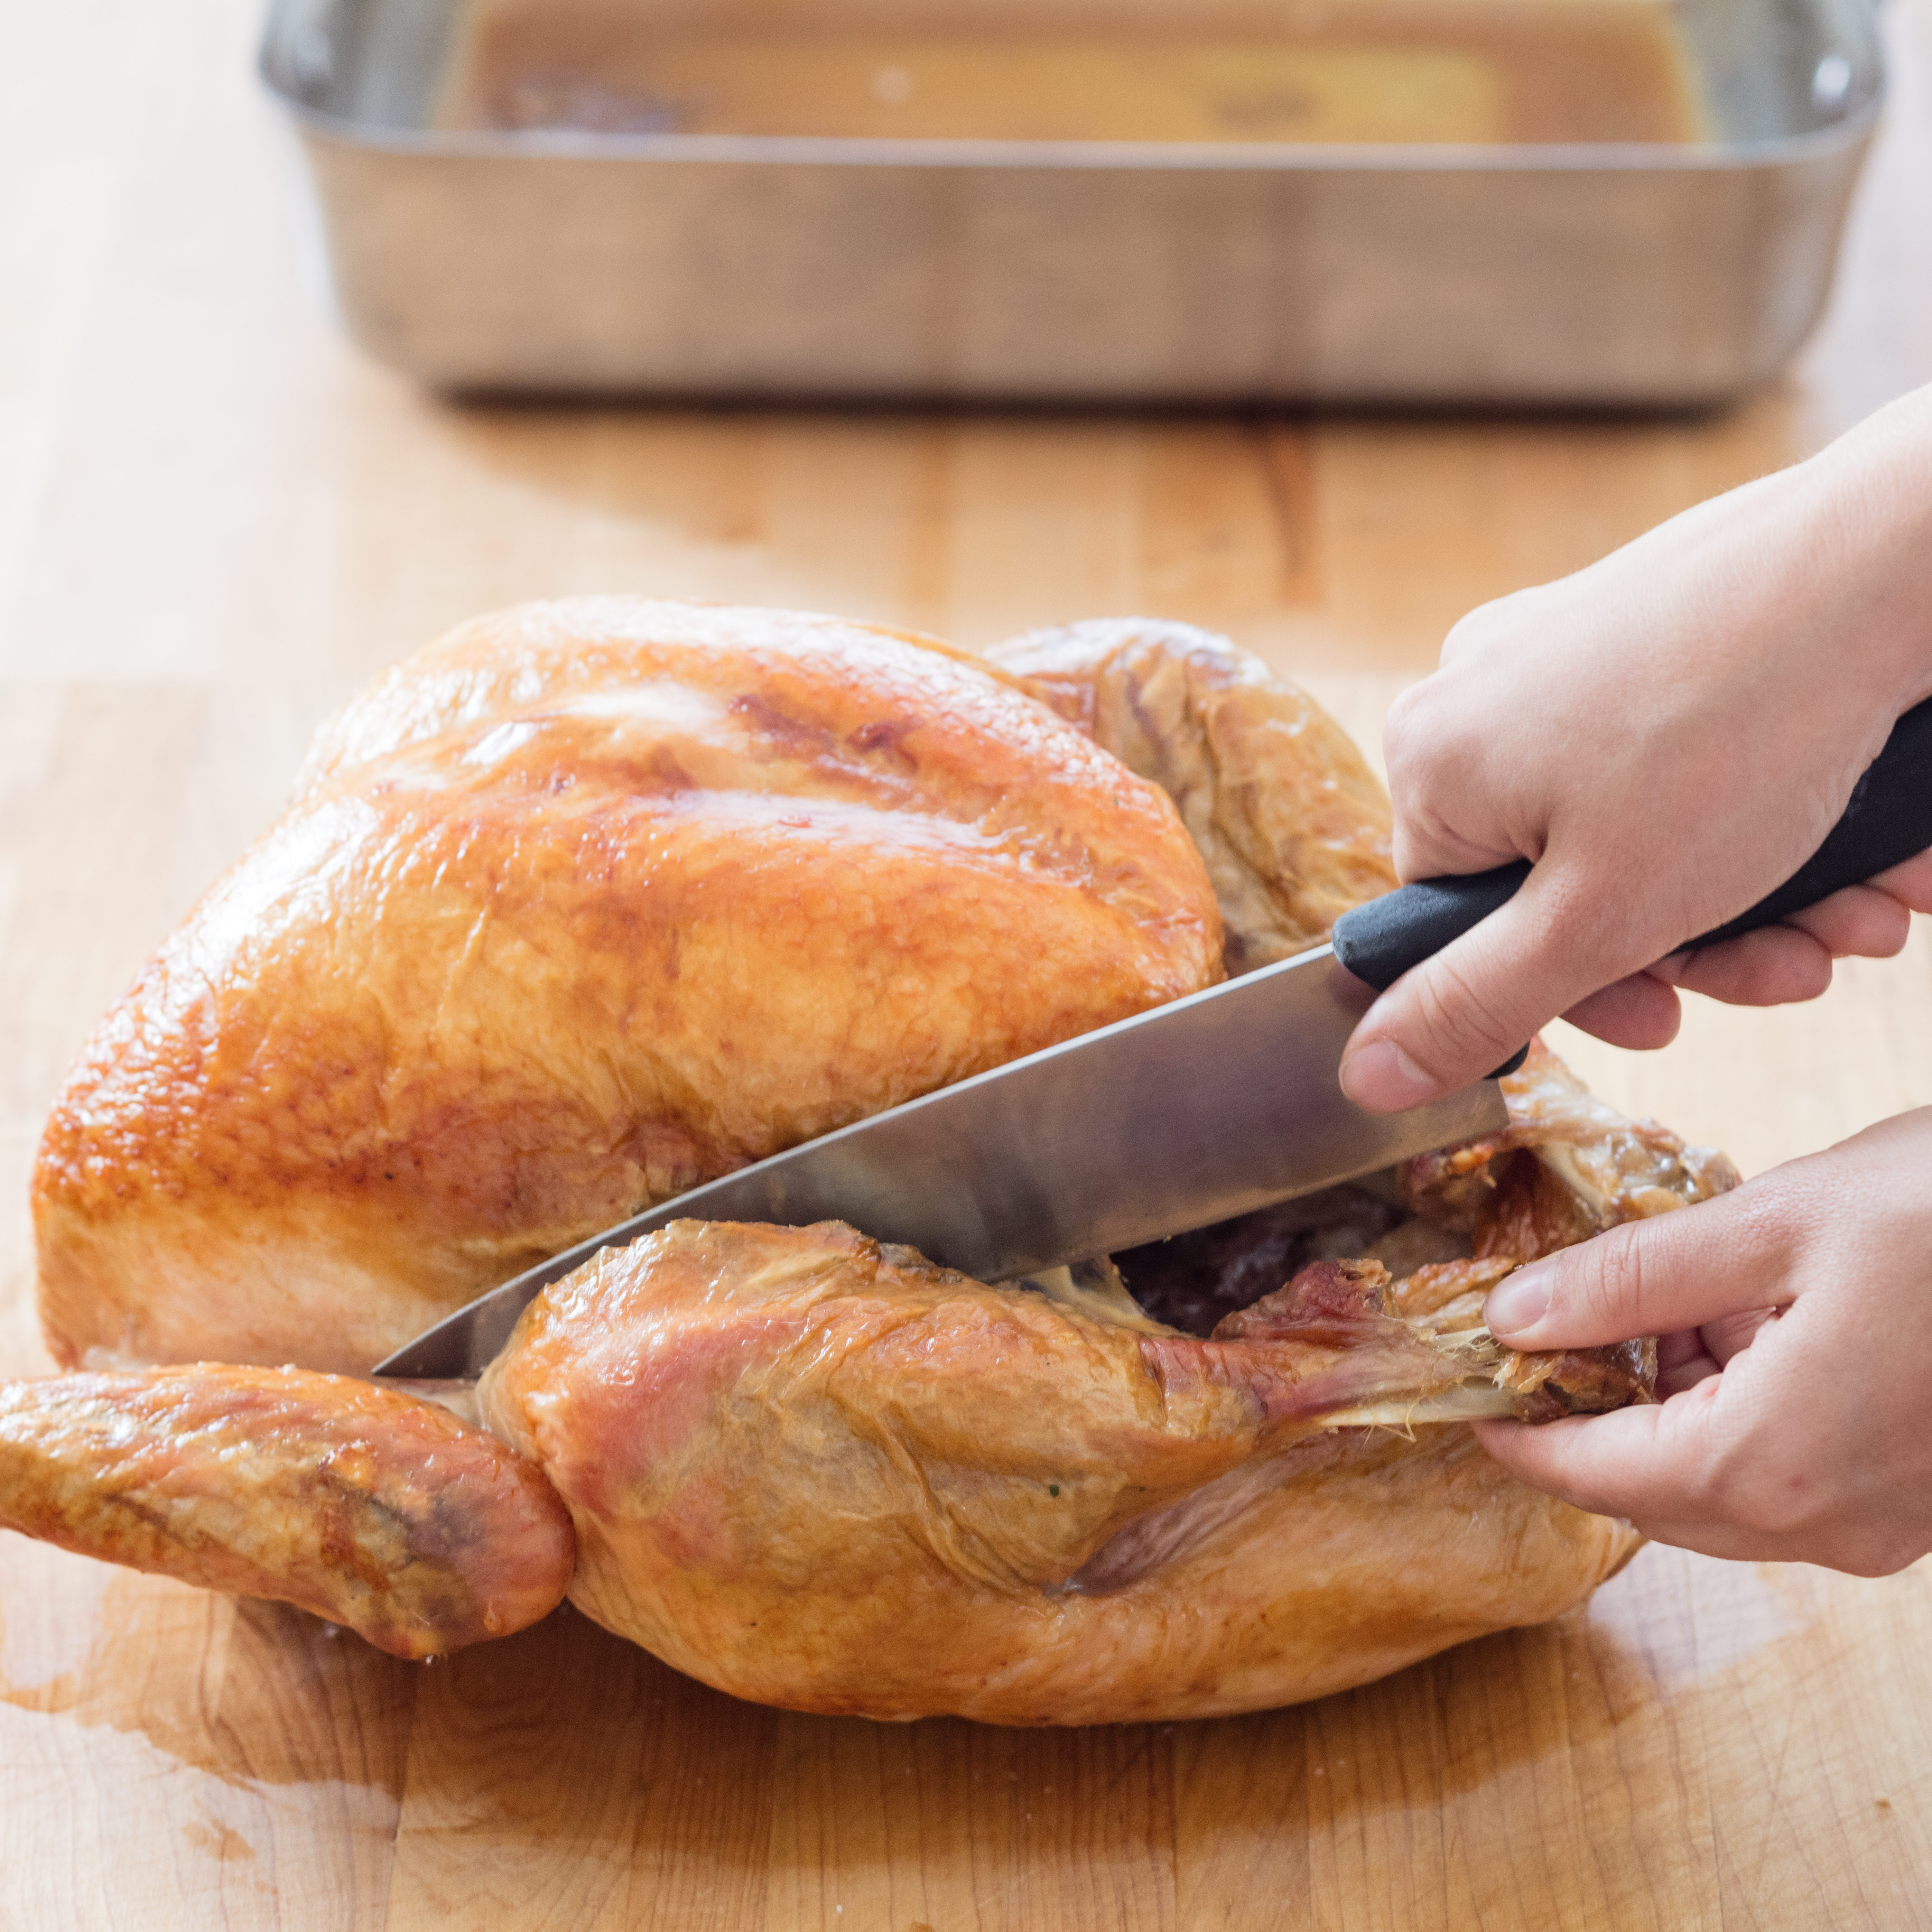 Americas Test Kitchen Thanksgiving Turkey  How to Roast a Turkey Like the Pros for Thanksgiving